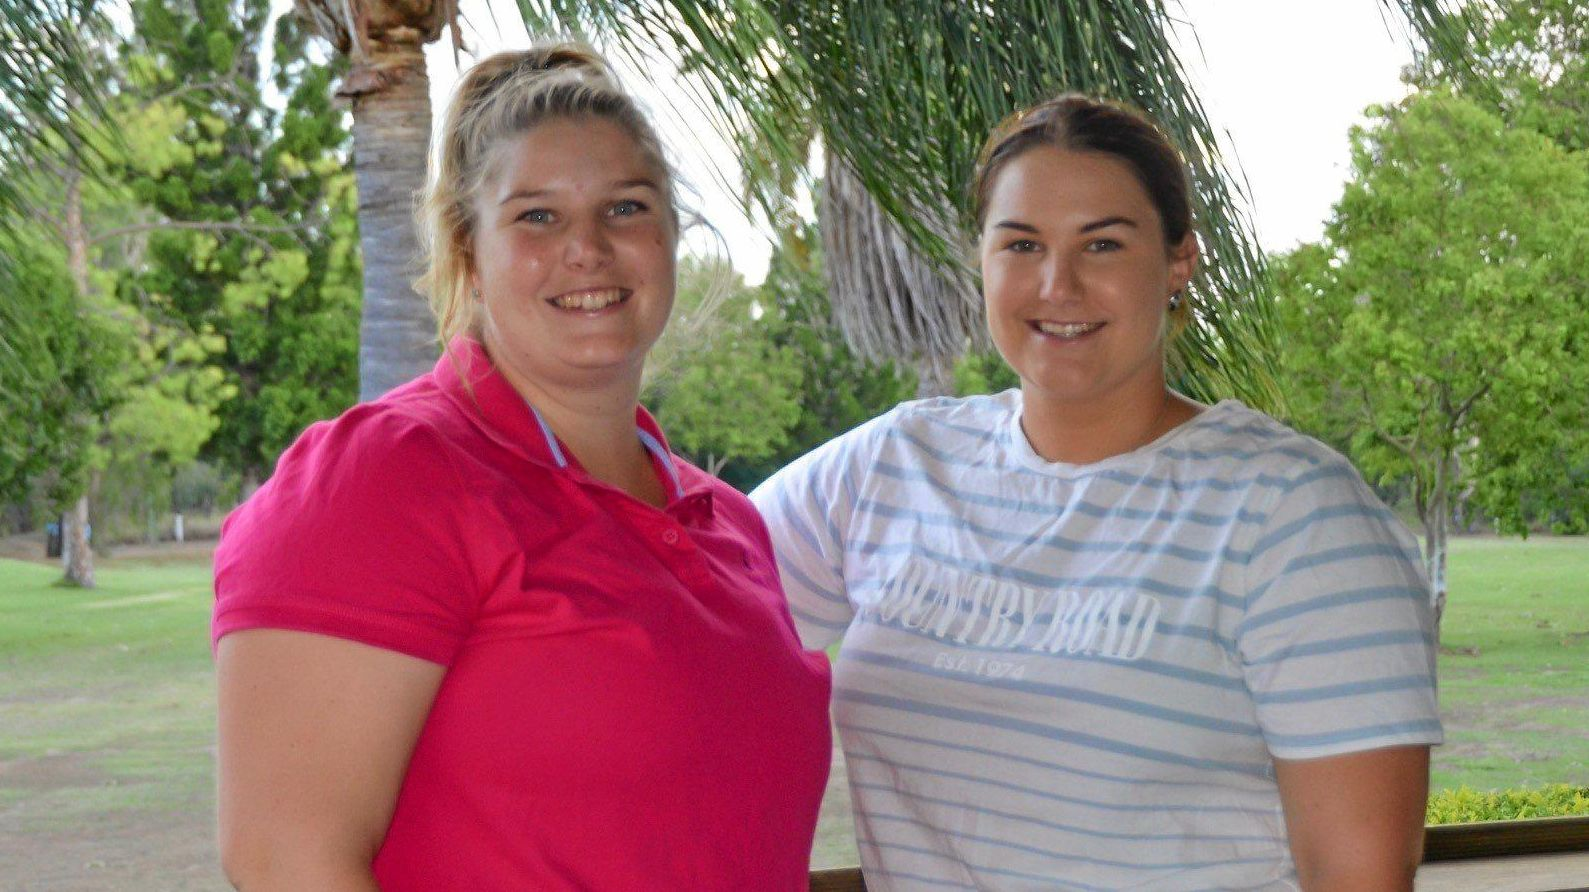 SIBLING RIVALRY: Sisters Allie and Molly Emmerton are both in the running for Gayndah Orange Festival's Queen title.